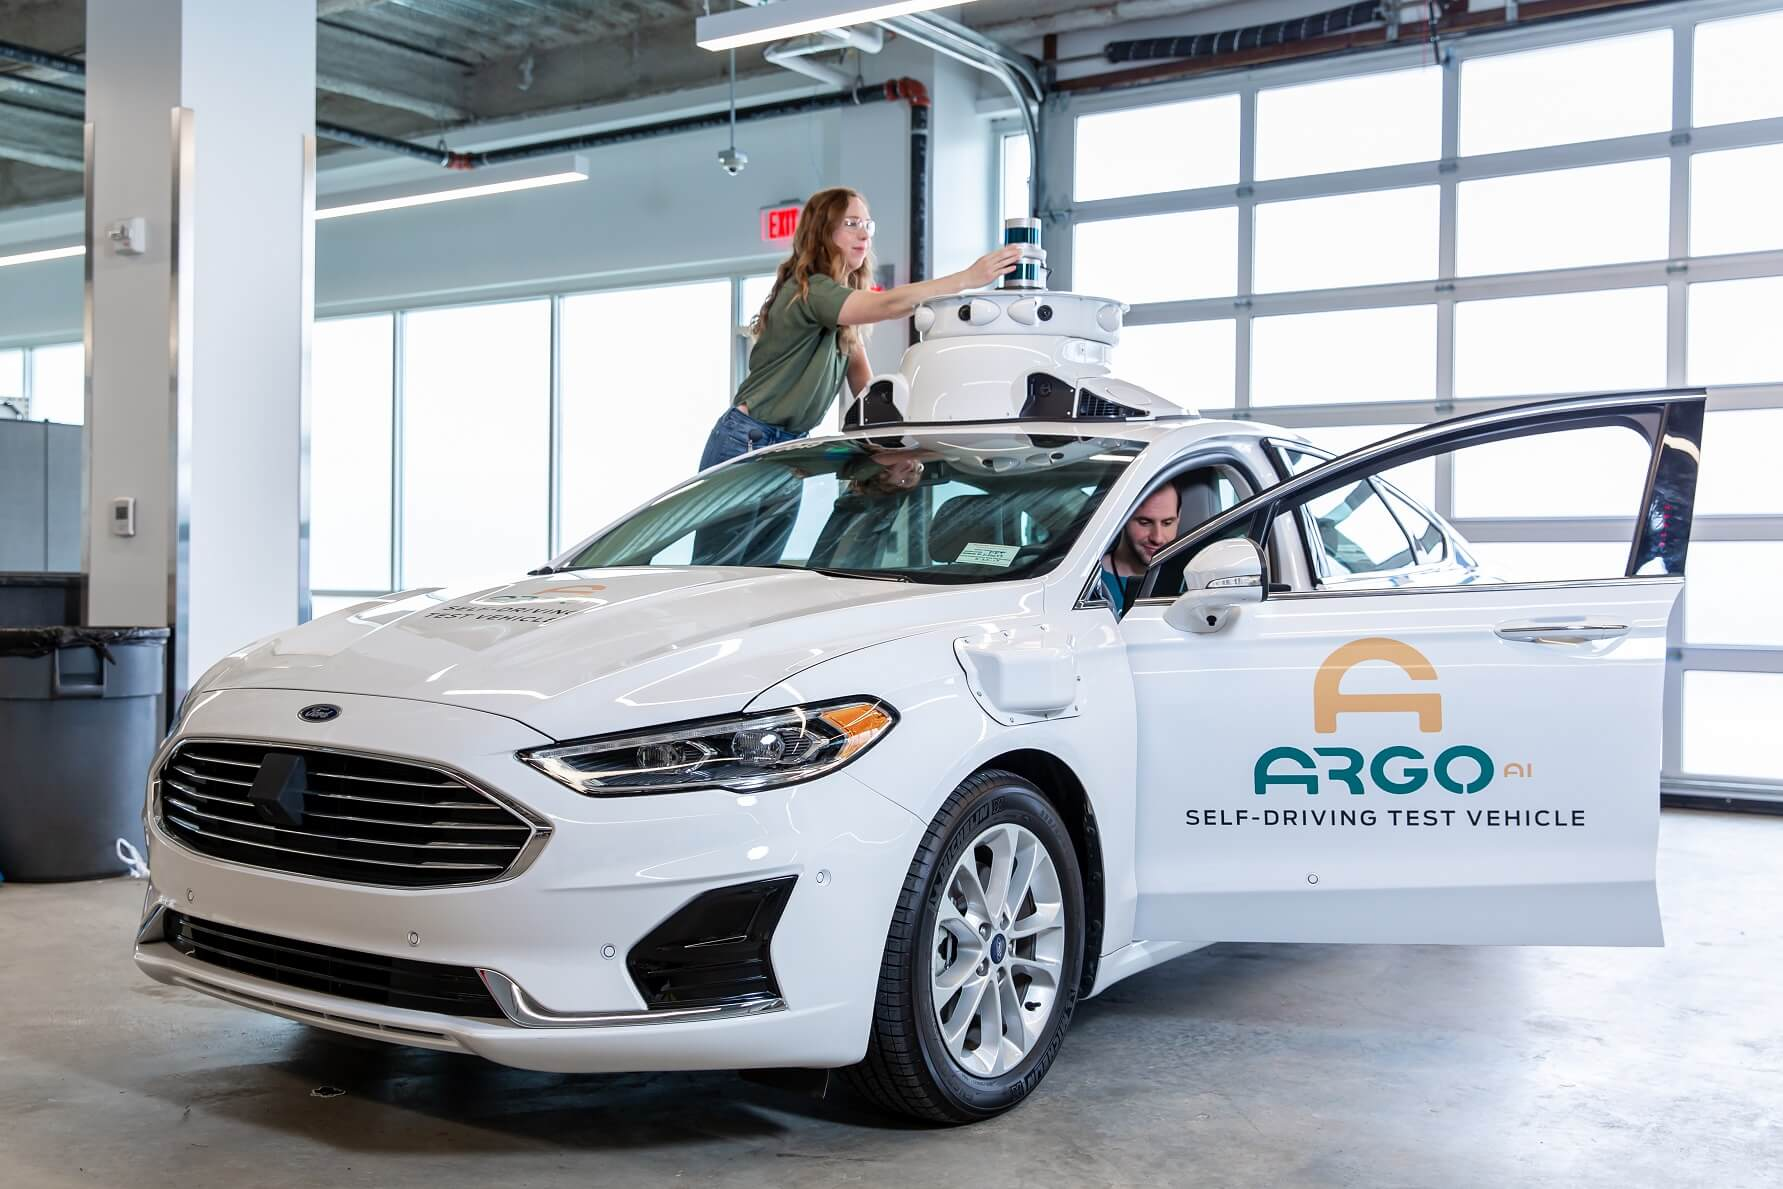 Ford and VW now own an equal stake in Argo AI, the self-driving car startup